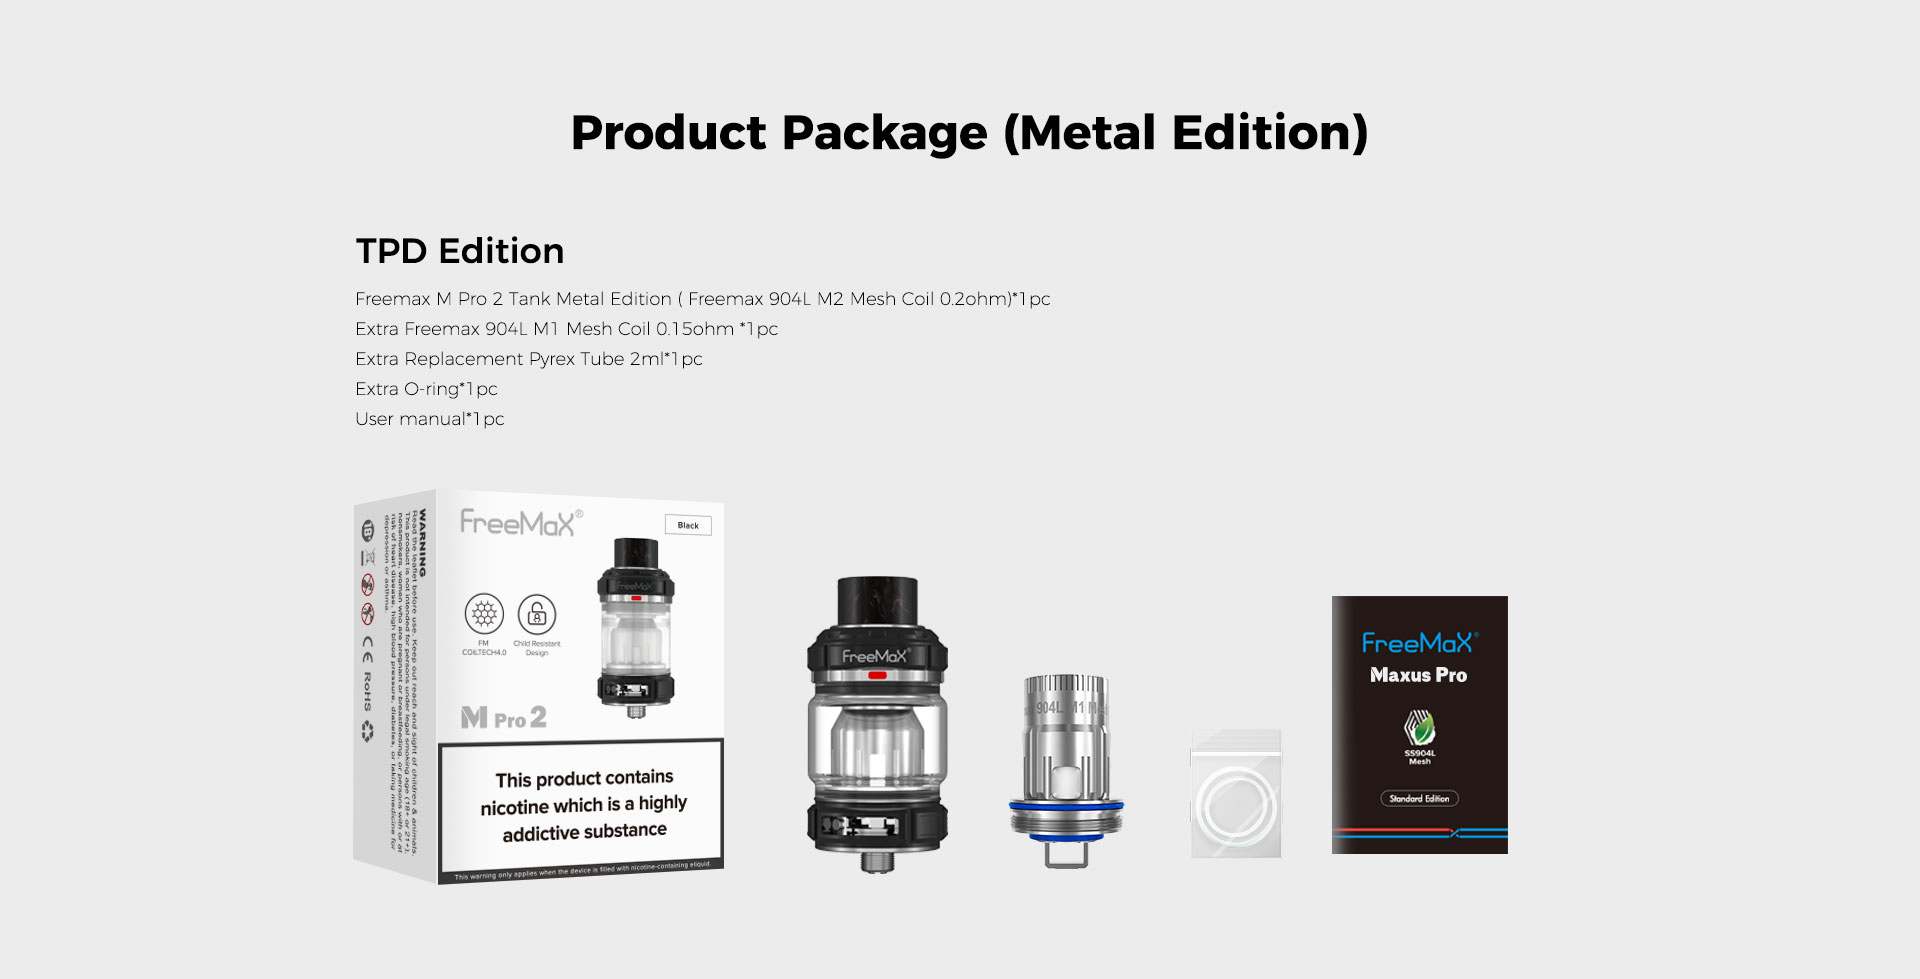 M Pro 2 Tank - Product Package(Metal Edition) TPD Edition